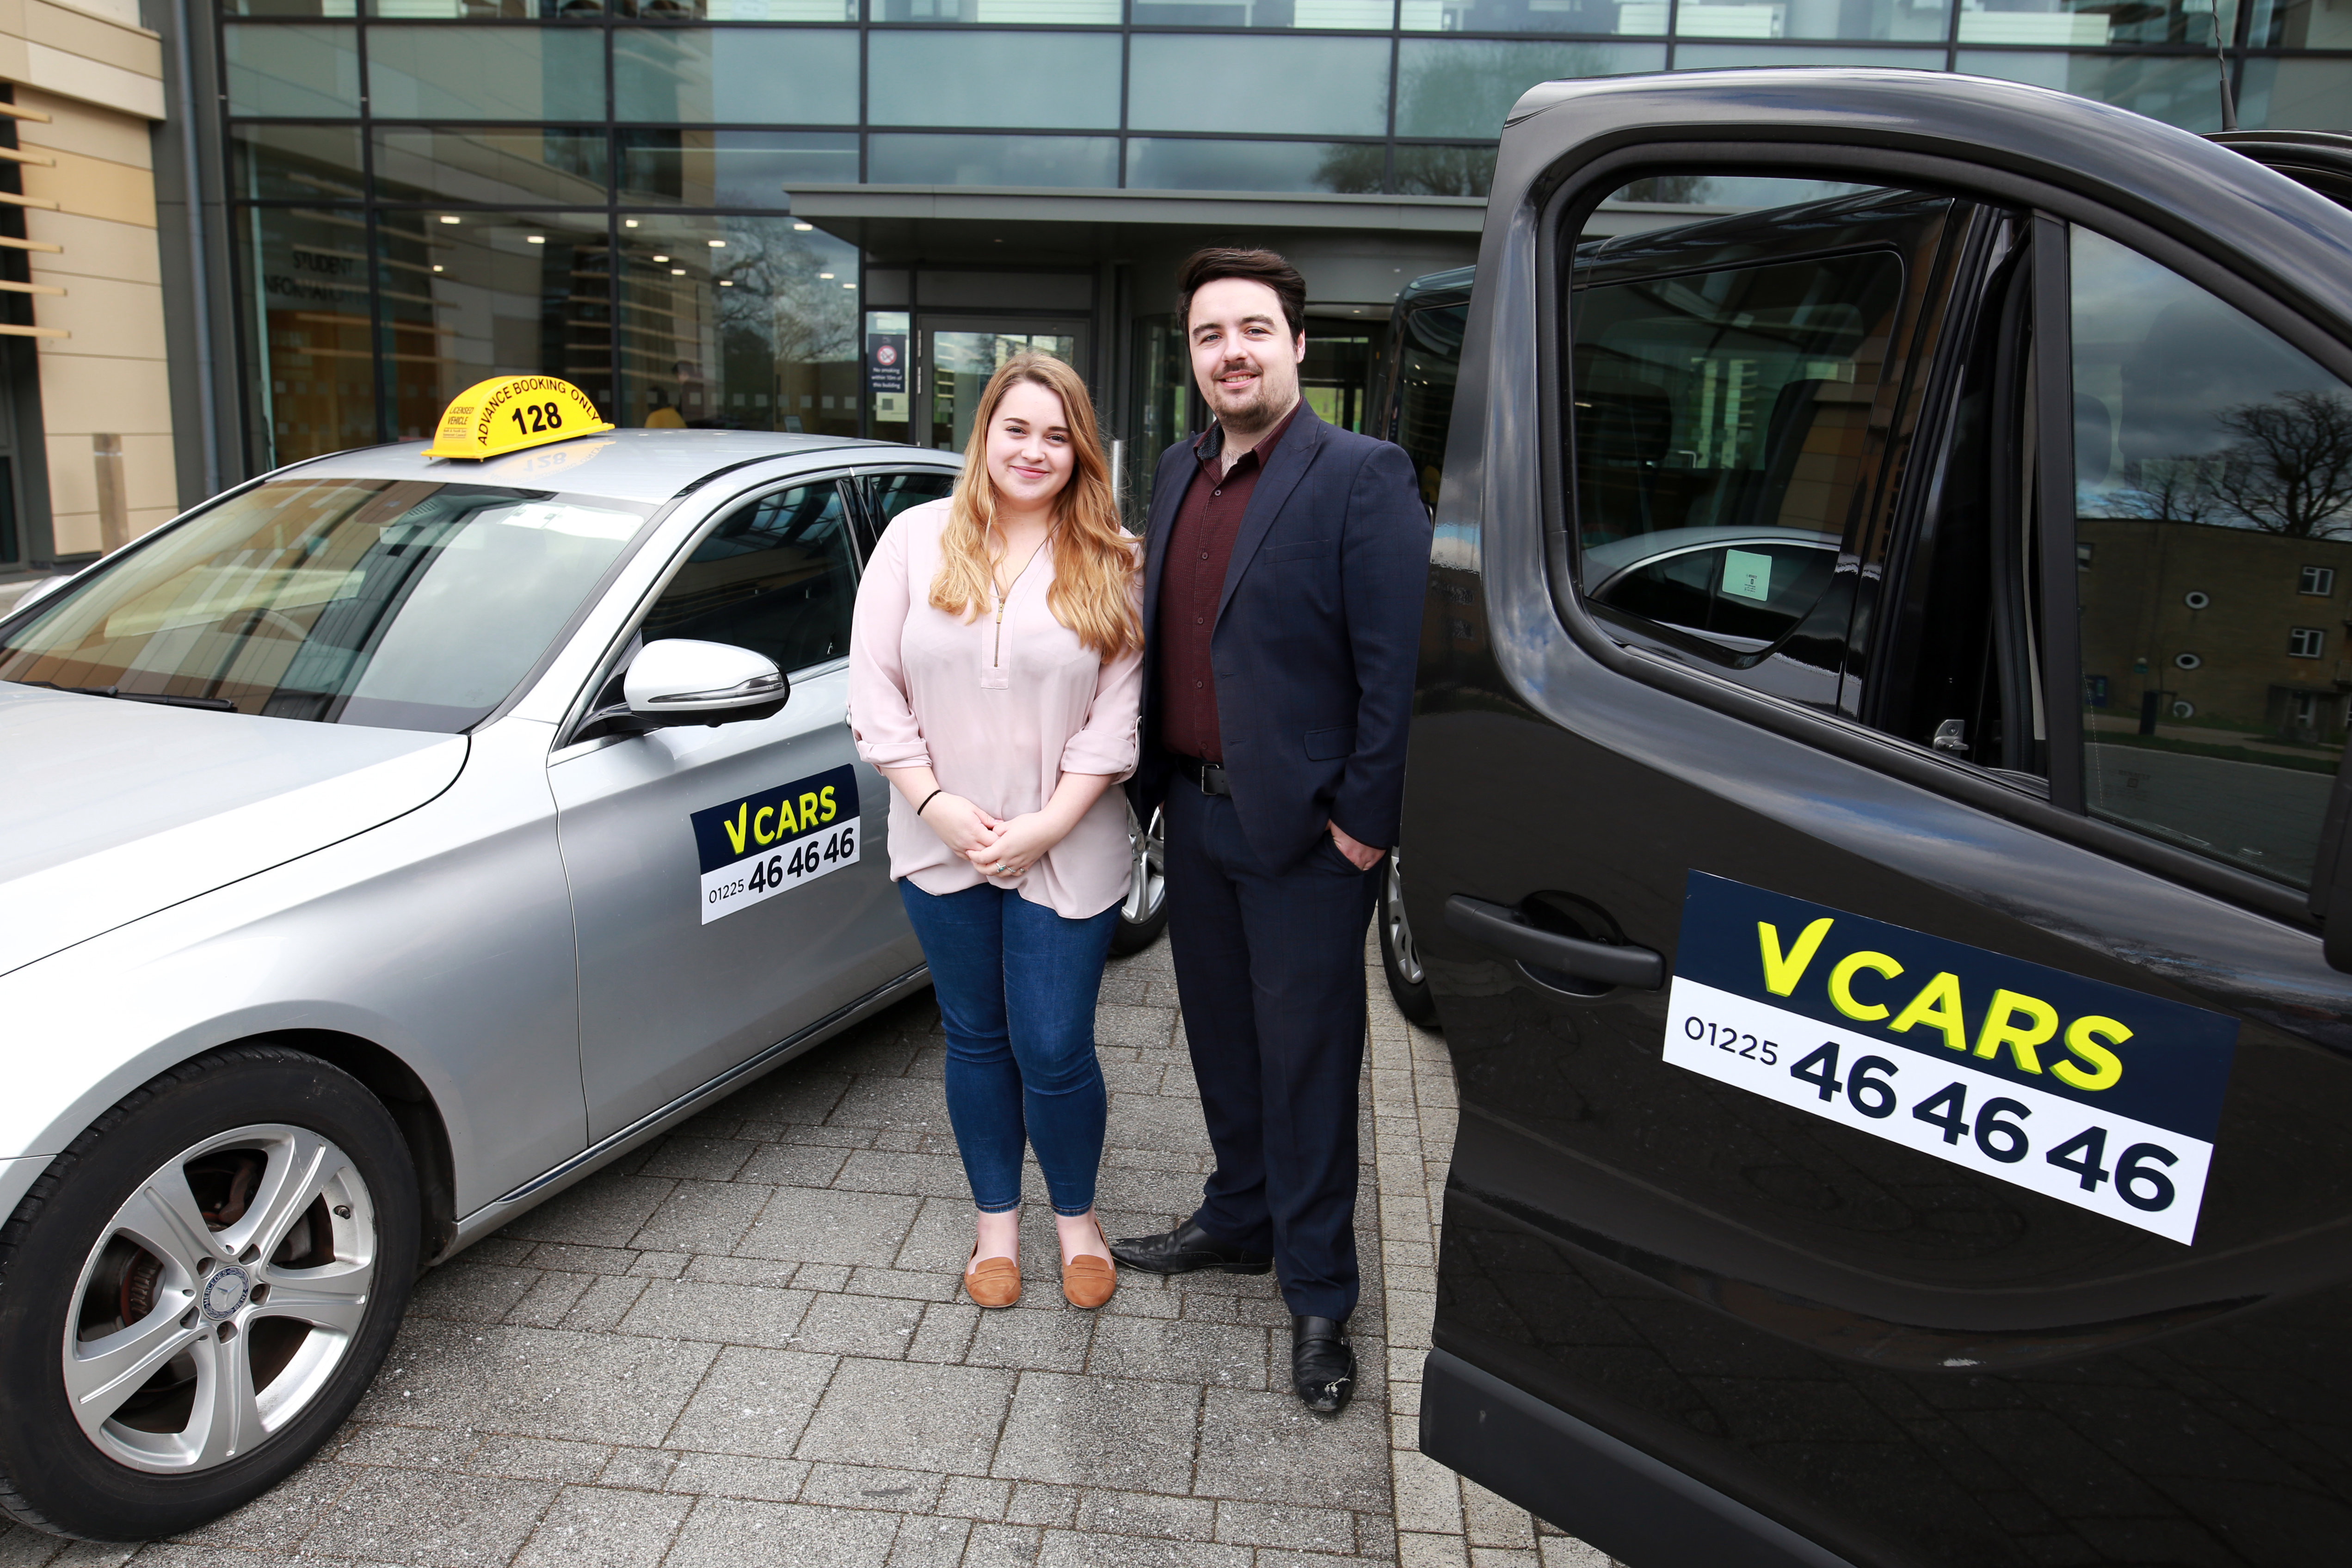 Bath Spa University Students' Union teams up with V Cars to launch safe taxi scheme